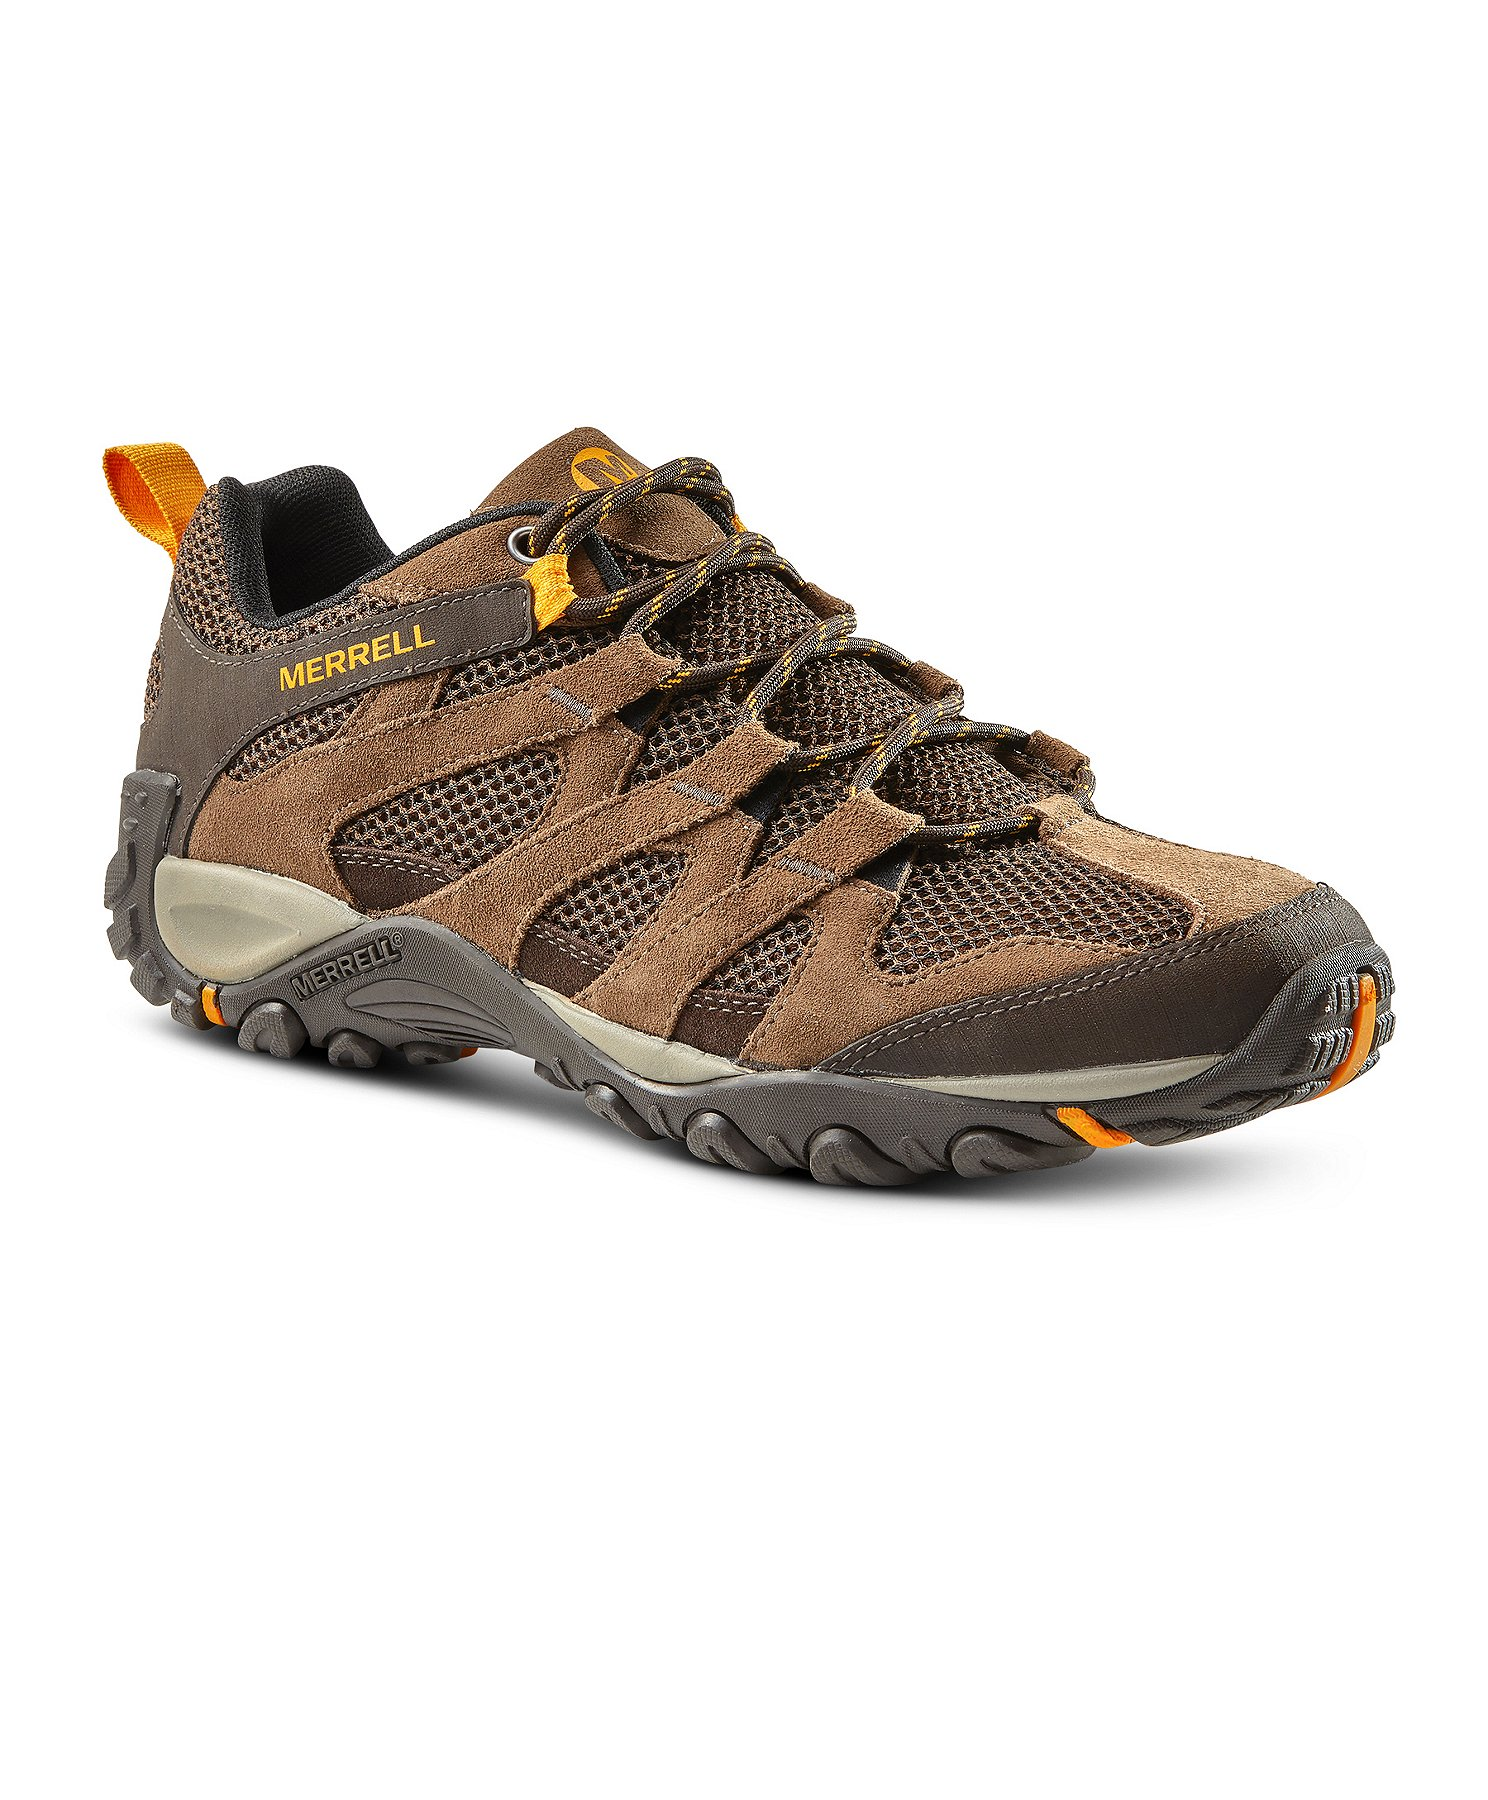 Merrell Mens Alverstone Mid Brown Suede Waterproof Hiking Walking Hiker Boots